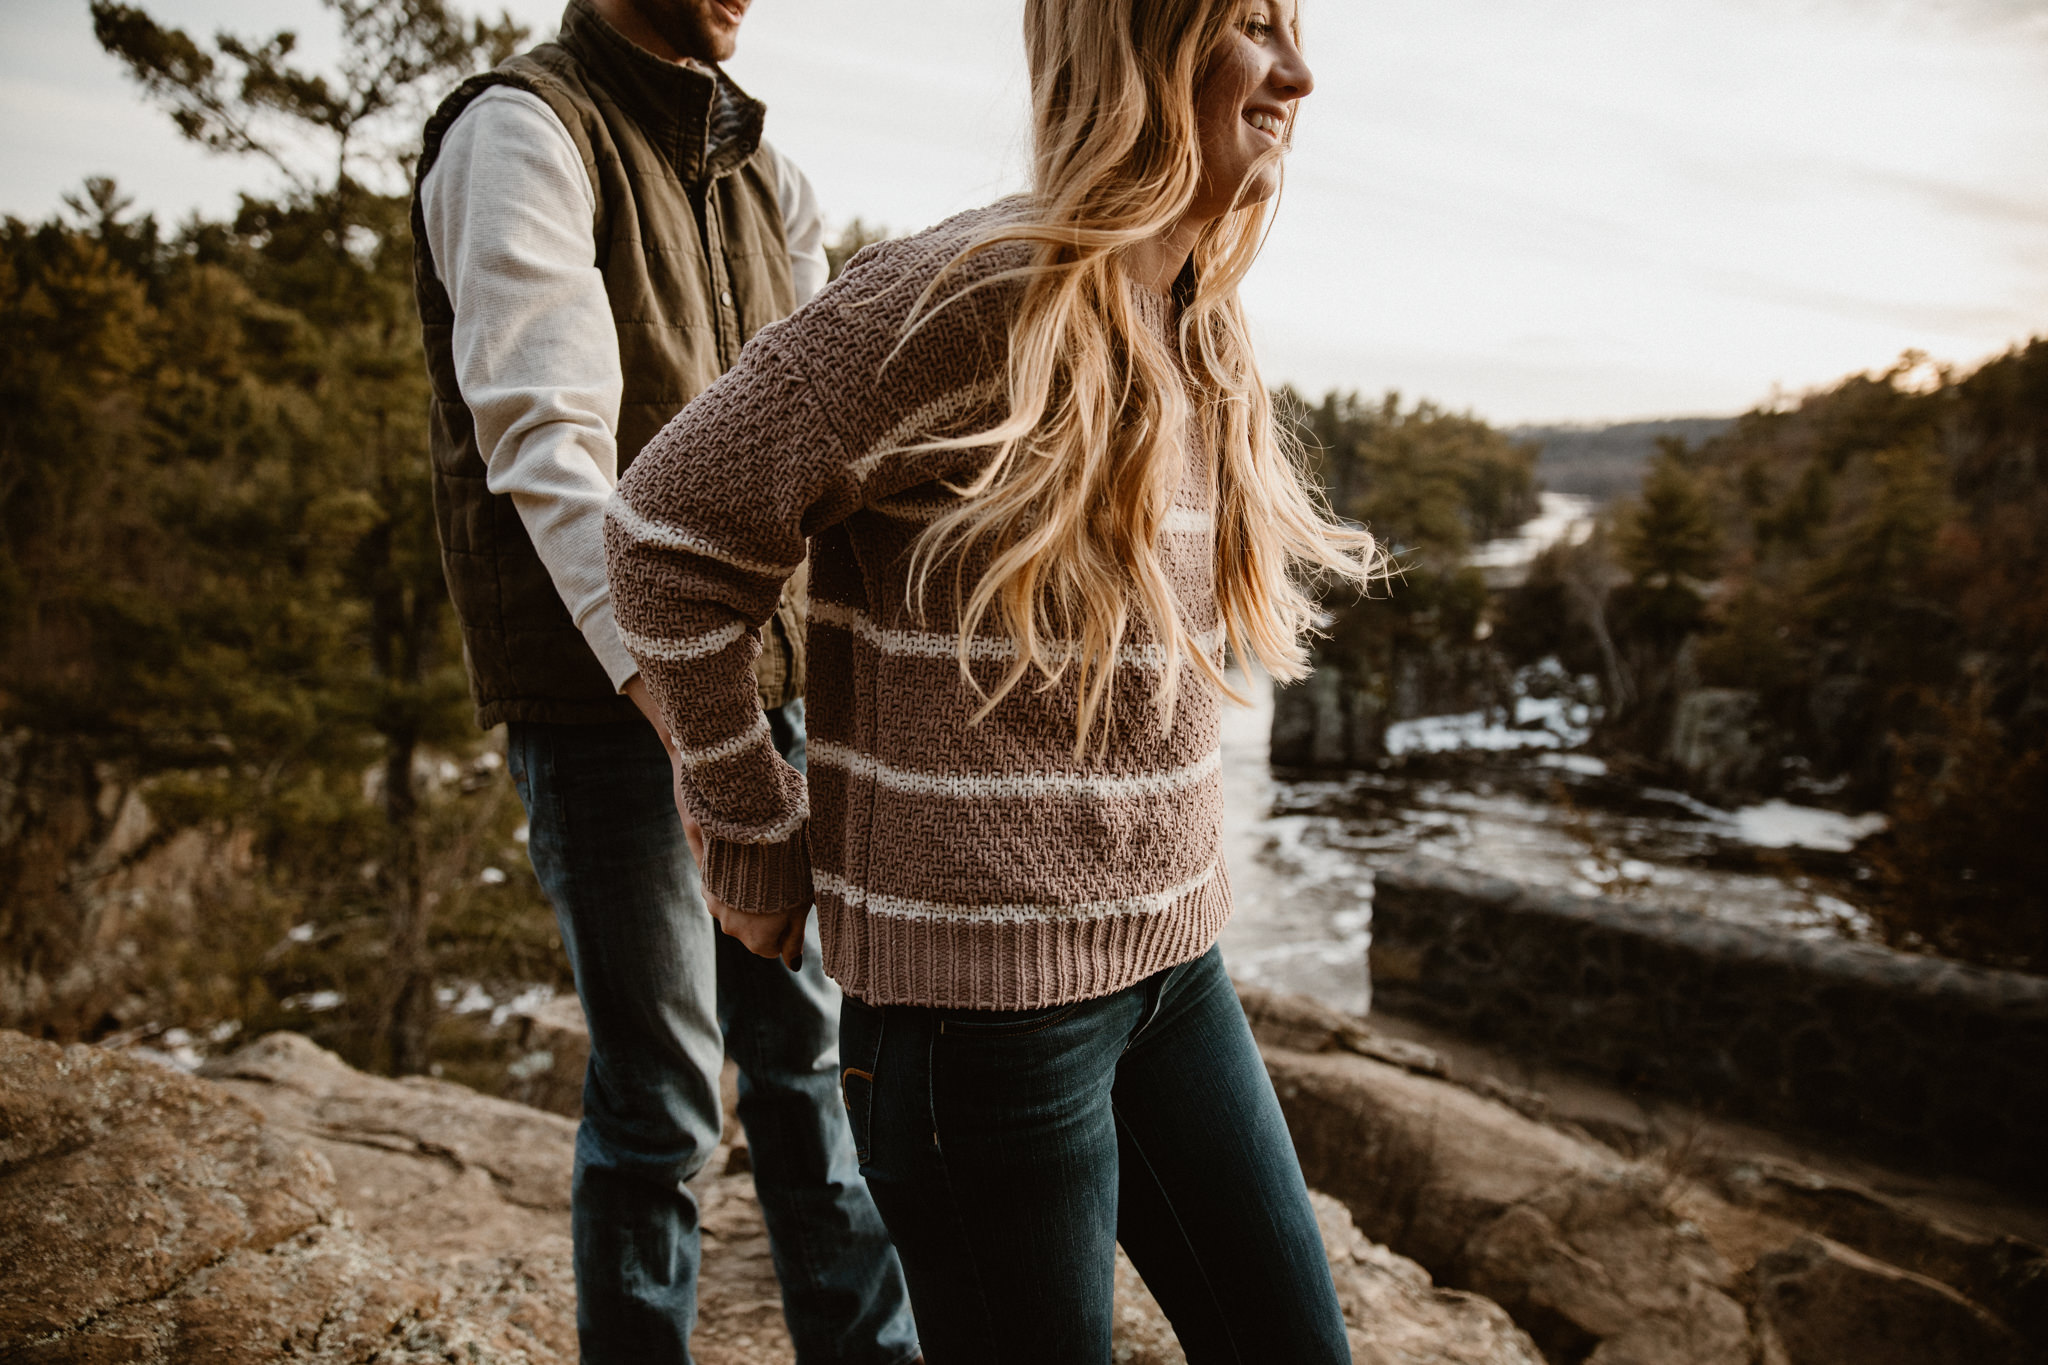 Adventurous engagement photographer in Minnesota